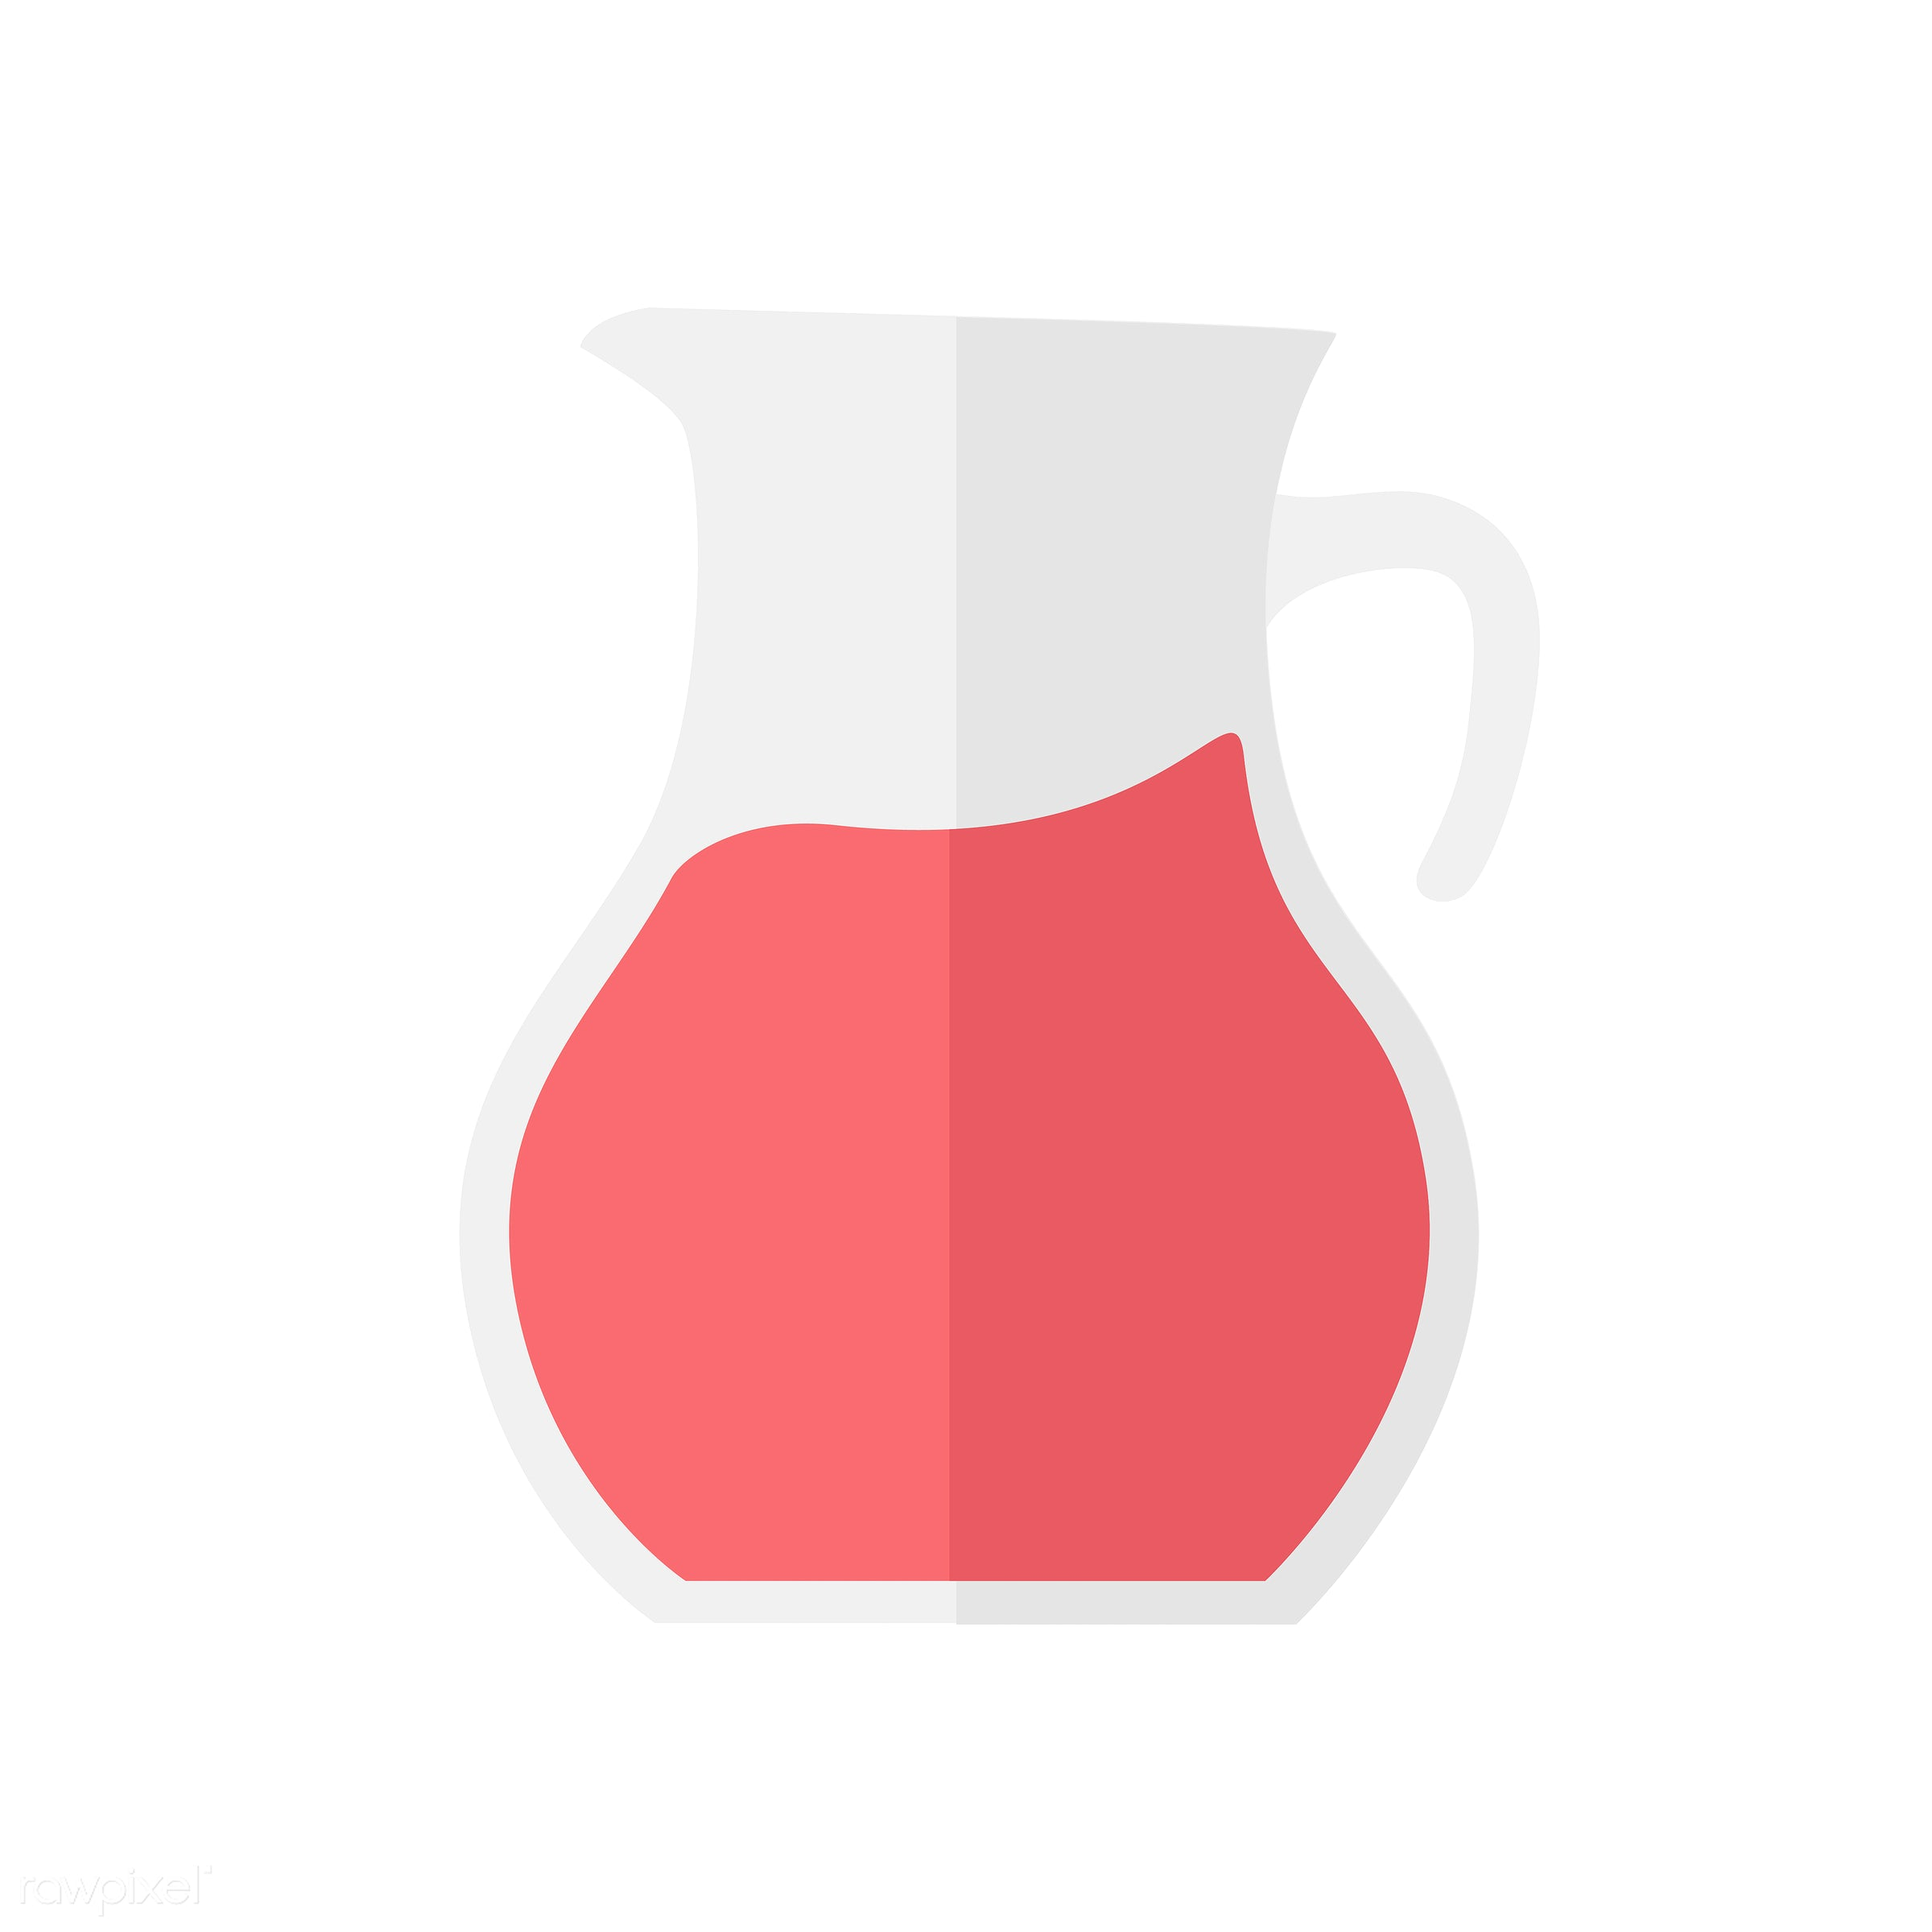 vector, graphic, illustration, icon, symbol, colorful, cute, drink, beverage, water, jug, lemonade, red